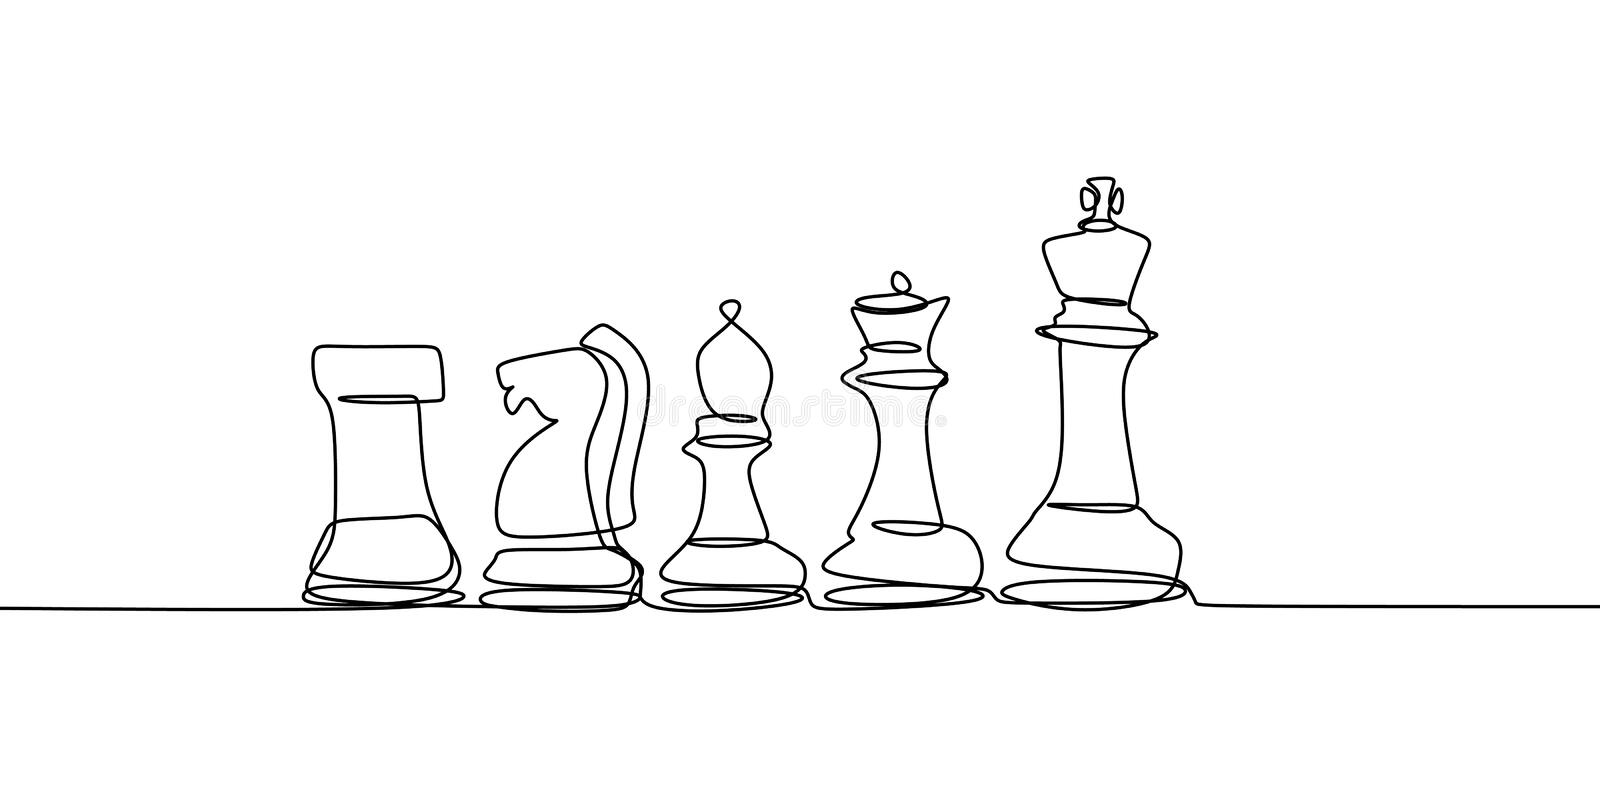 Chess player with continuous single line drawing vector illustration isolated on white background vector illustration